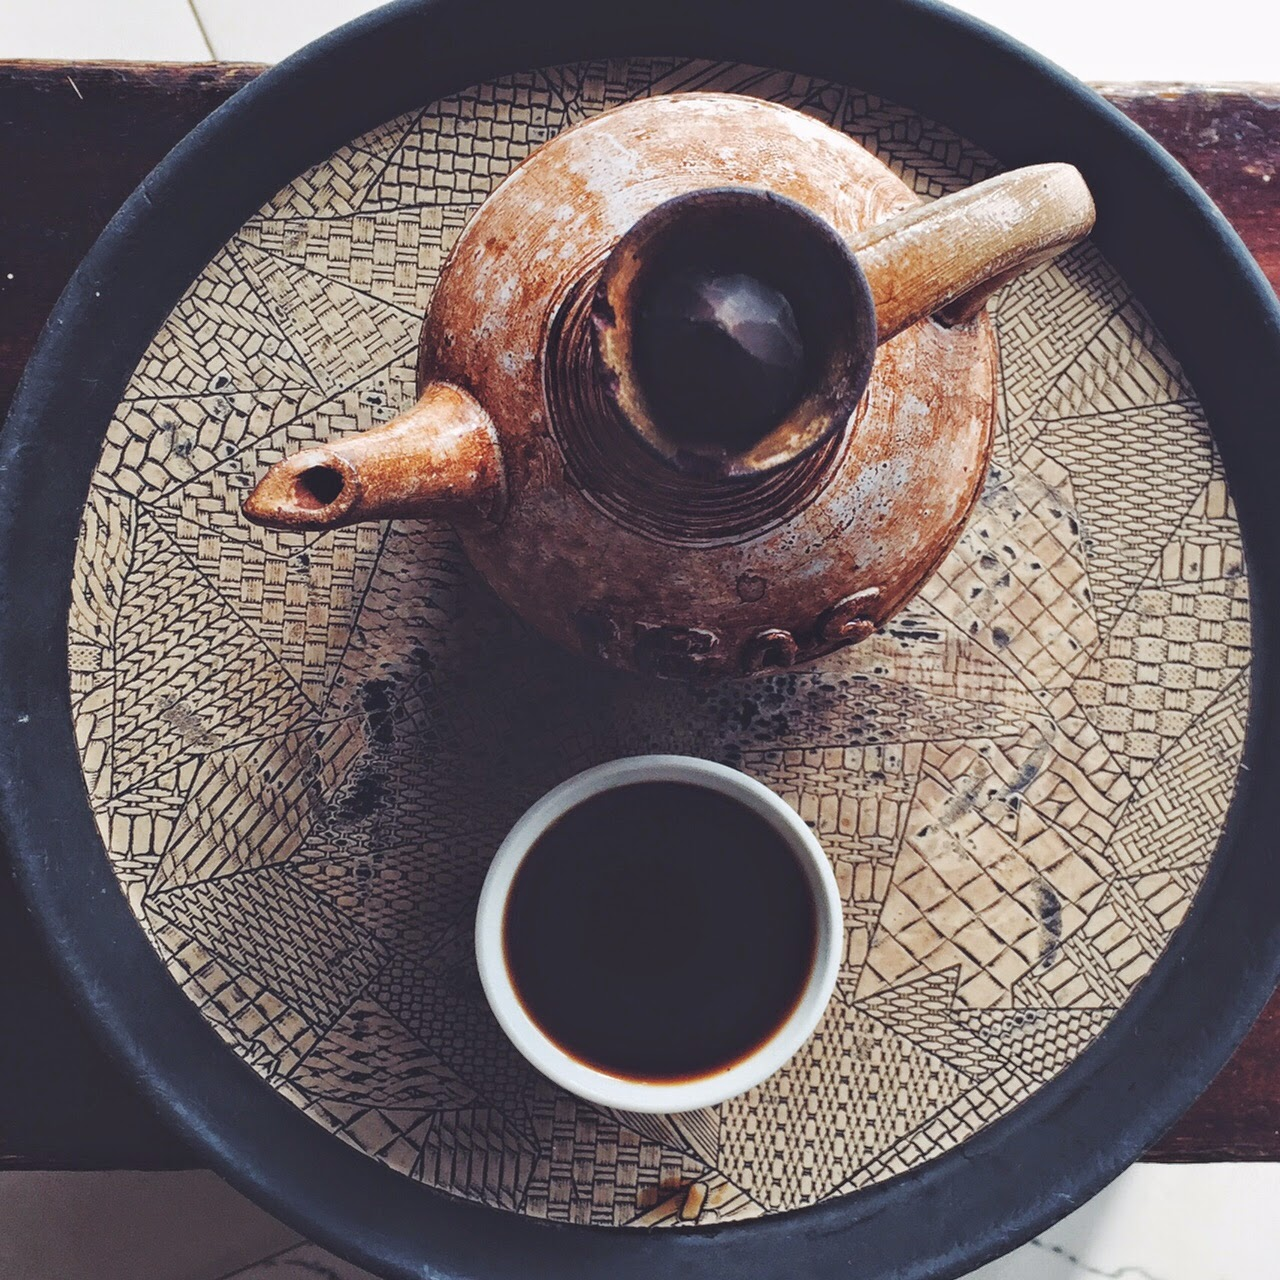 iphone 6 food photography food coffee africa travel